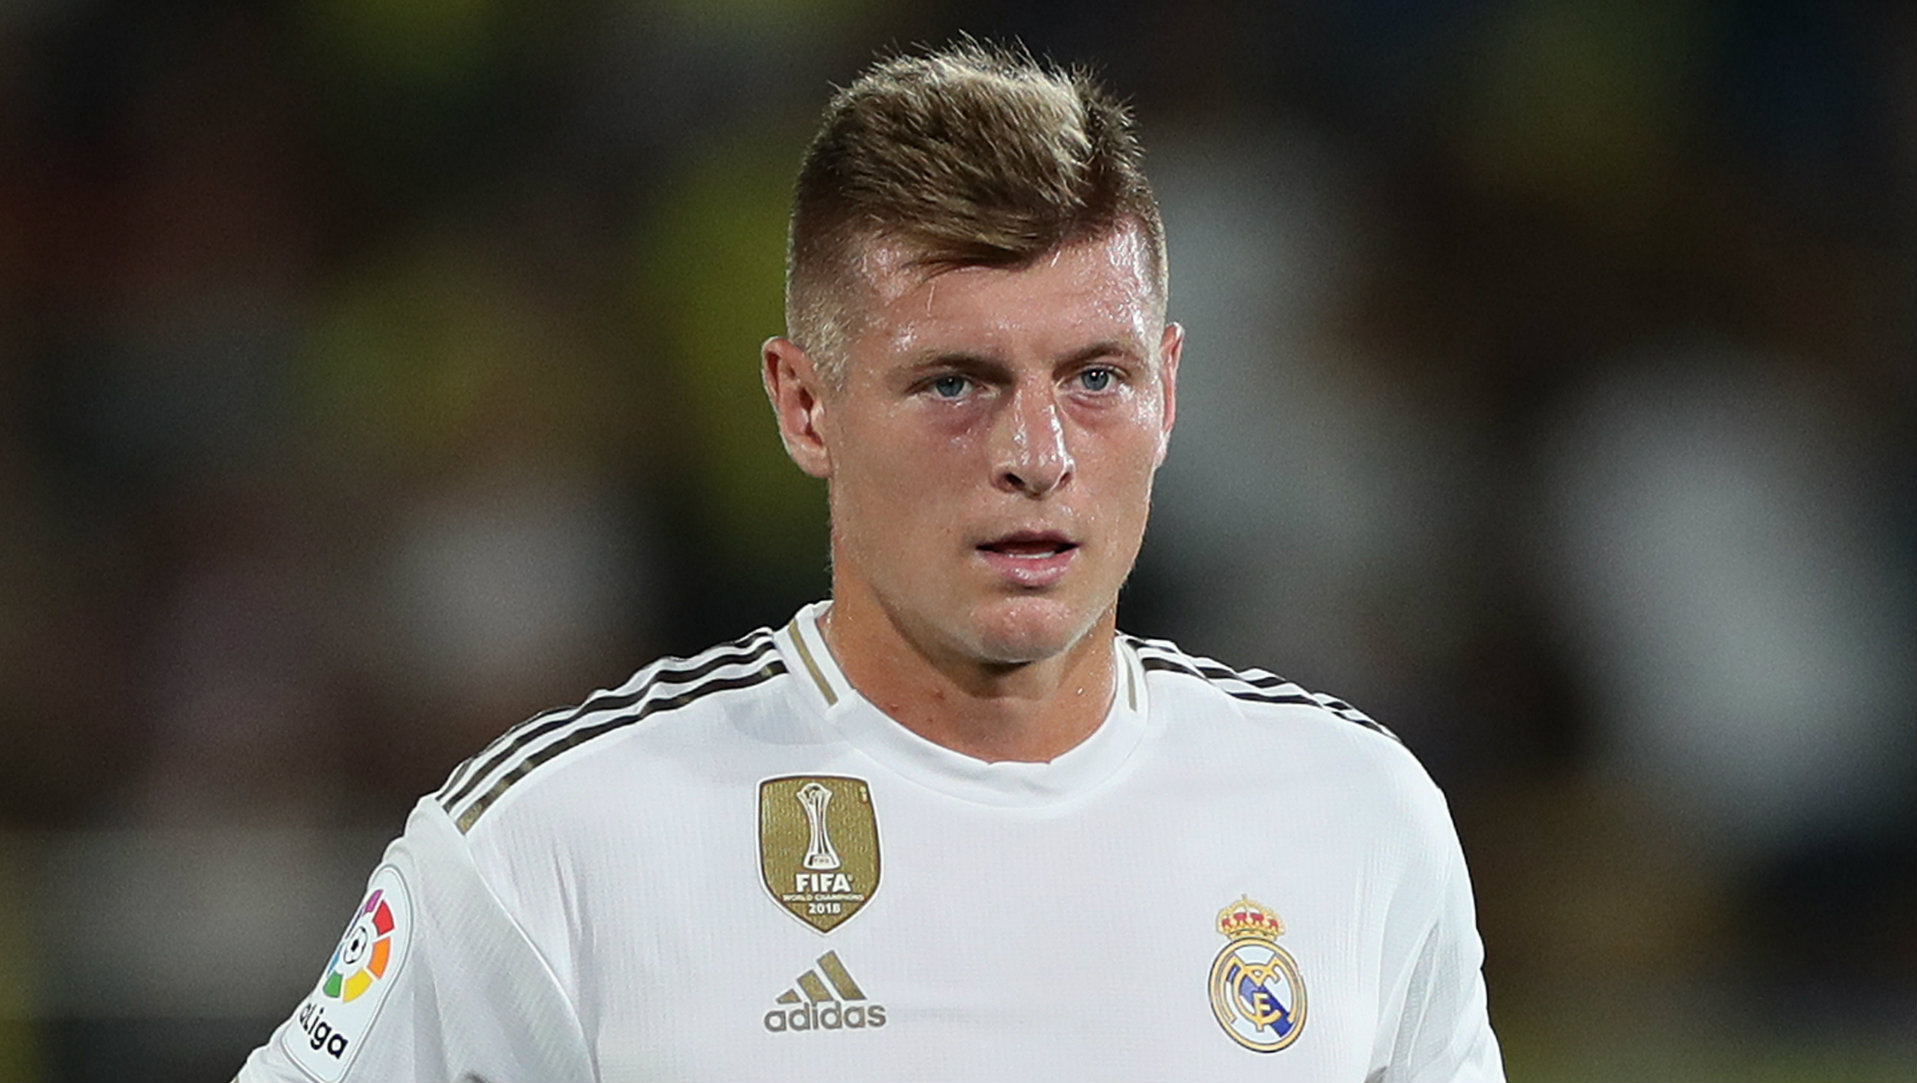 """Il y a de plus gros problèmes que le football"" - Kroos fait le point sur la quarantaine du Real Madrid"